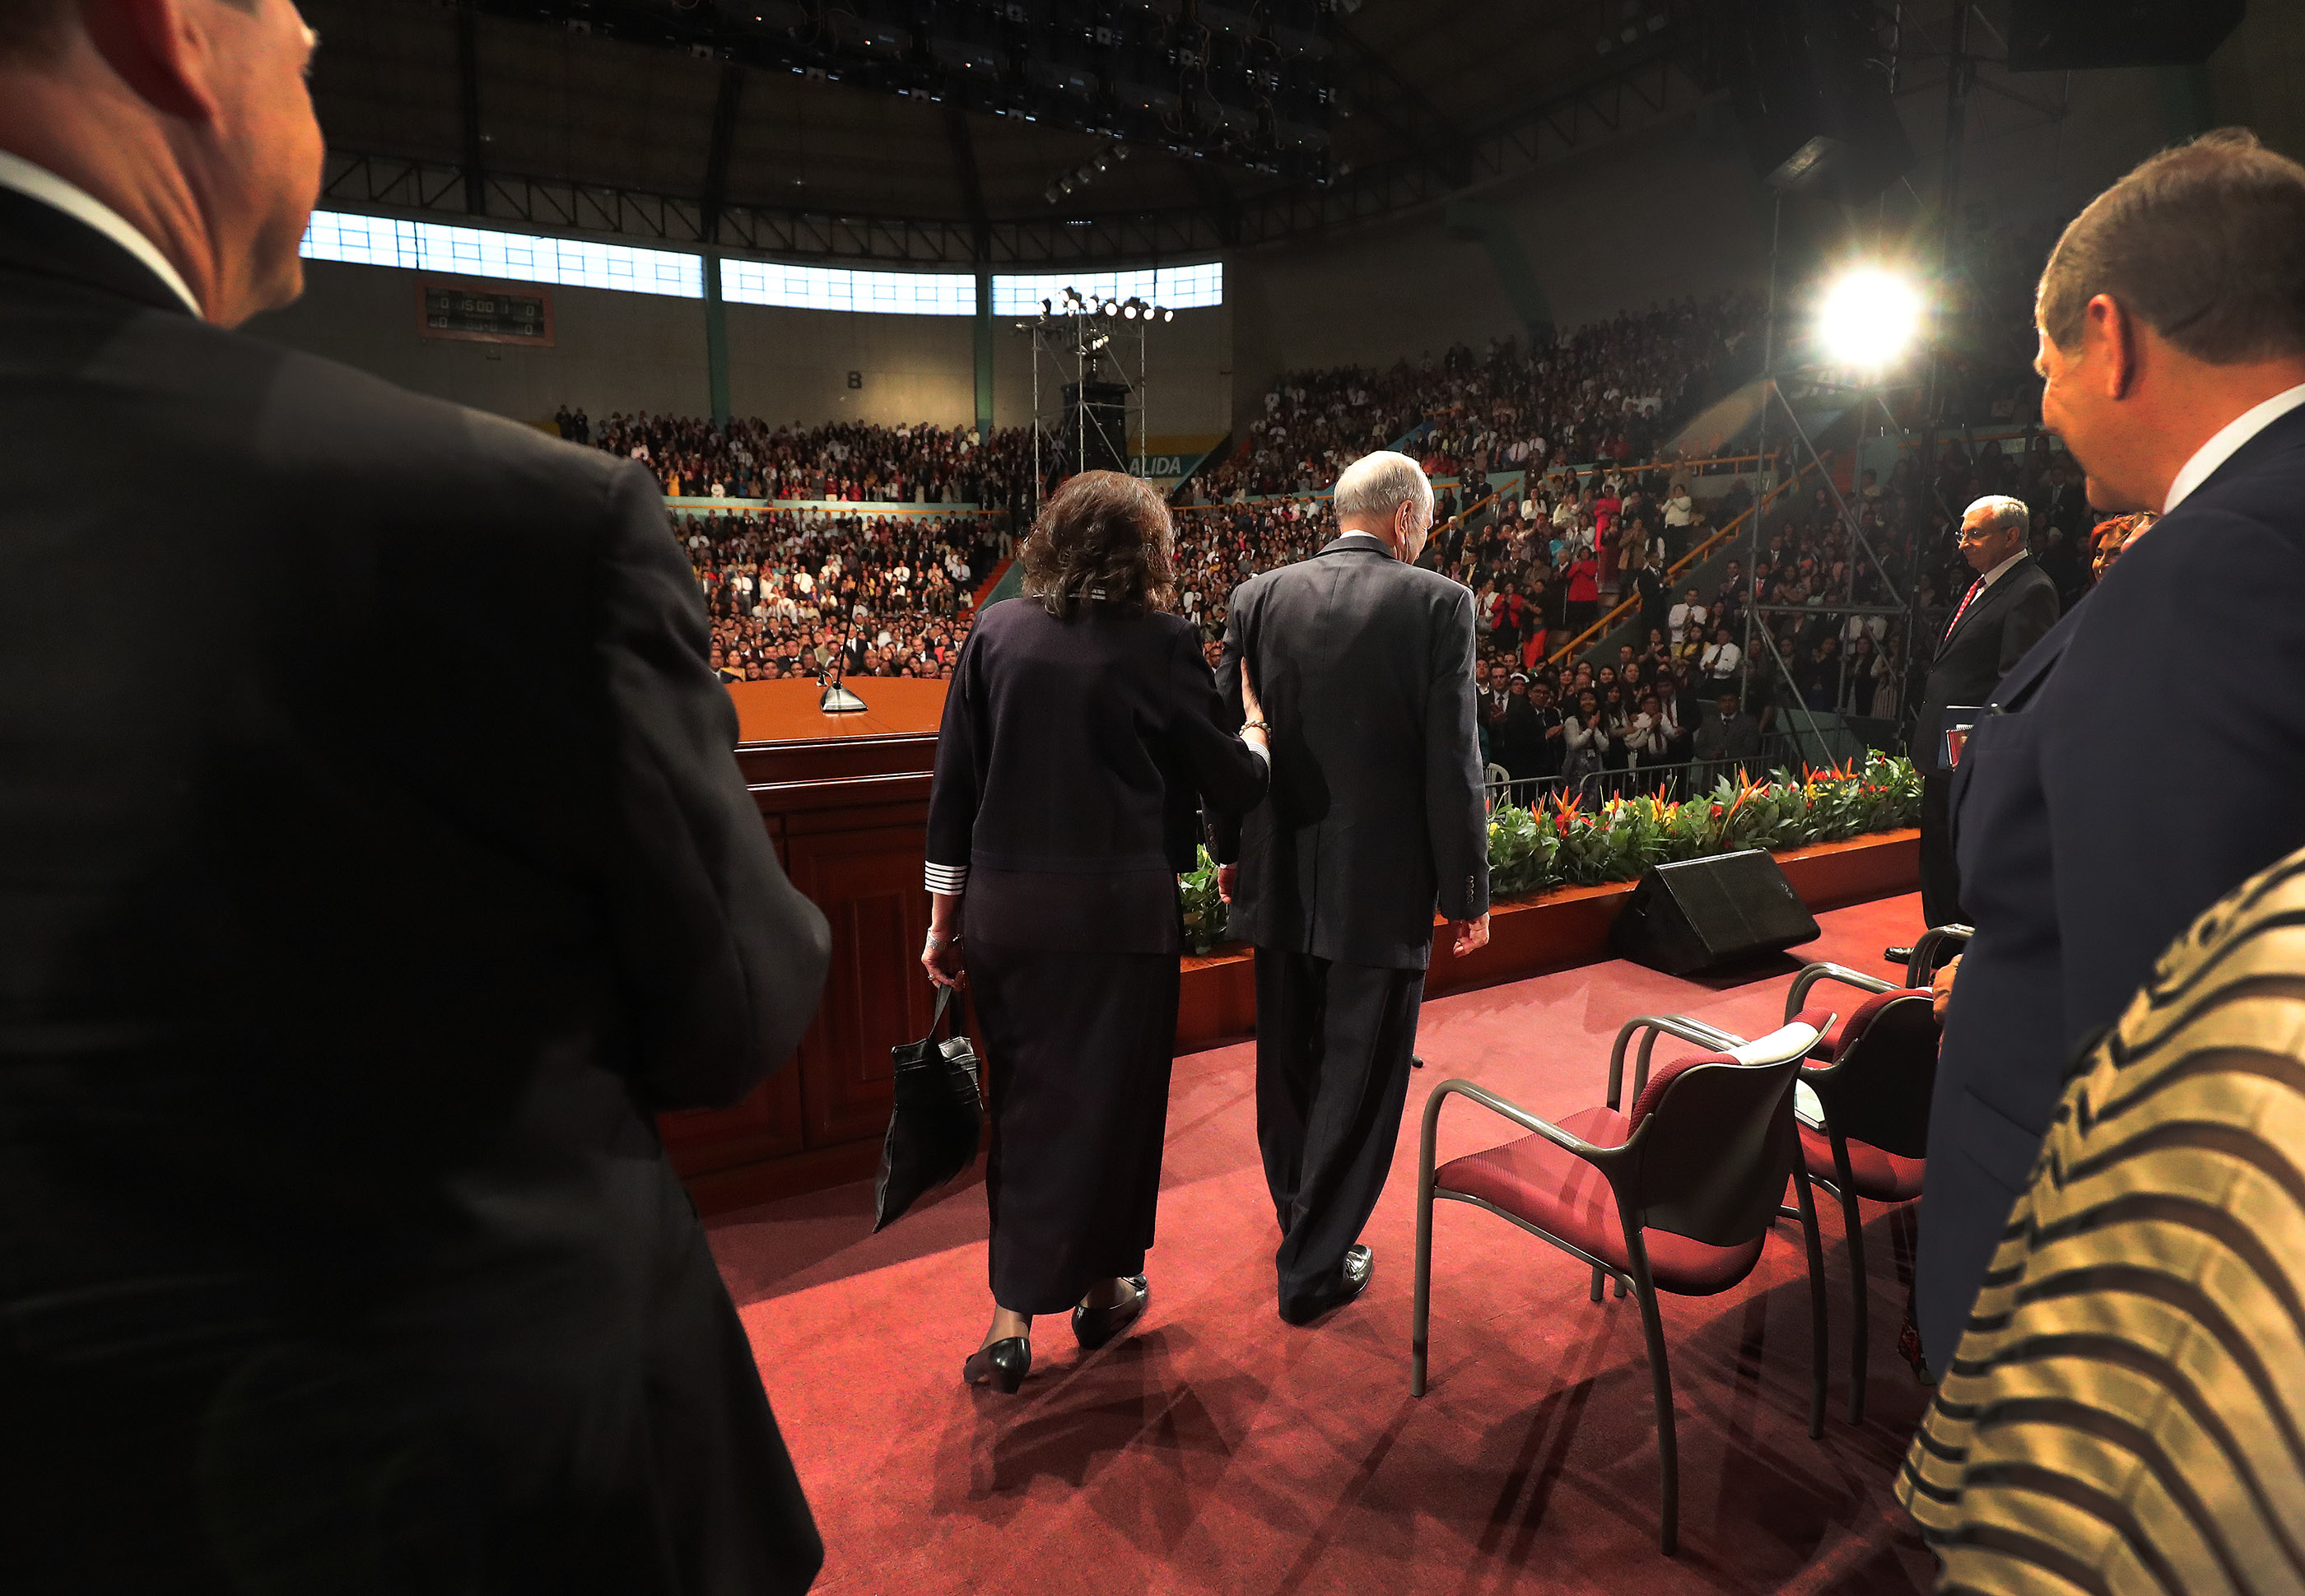 President Russell M. Nelson of The Church of Jesus Christ of Latter-day Saints walks with his wife Sister Wendy Nelson to the stage during a devotional in Lima, Peru on Oct. 20, 2018.